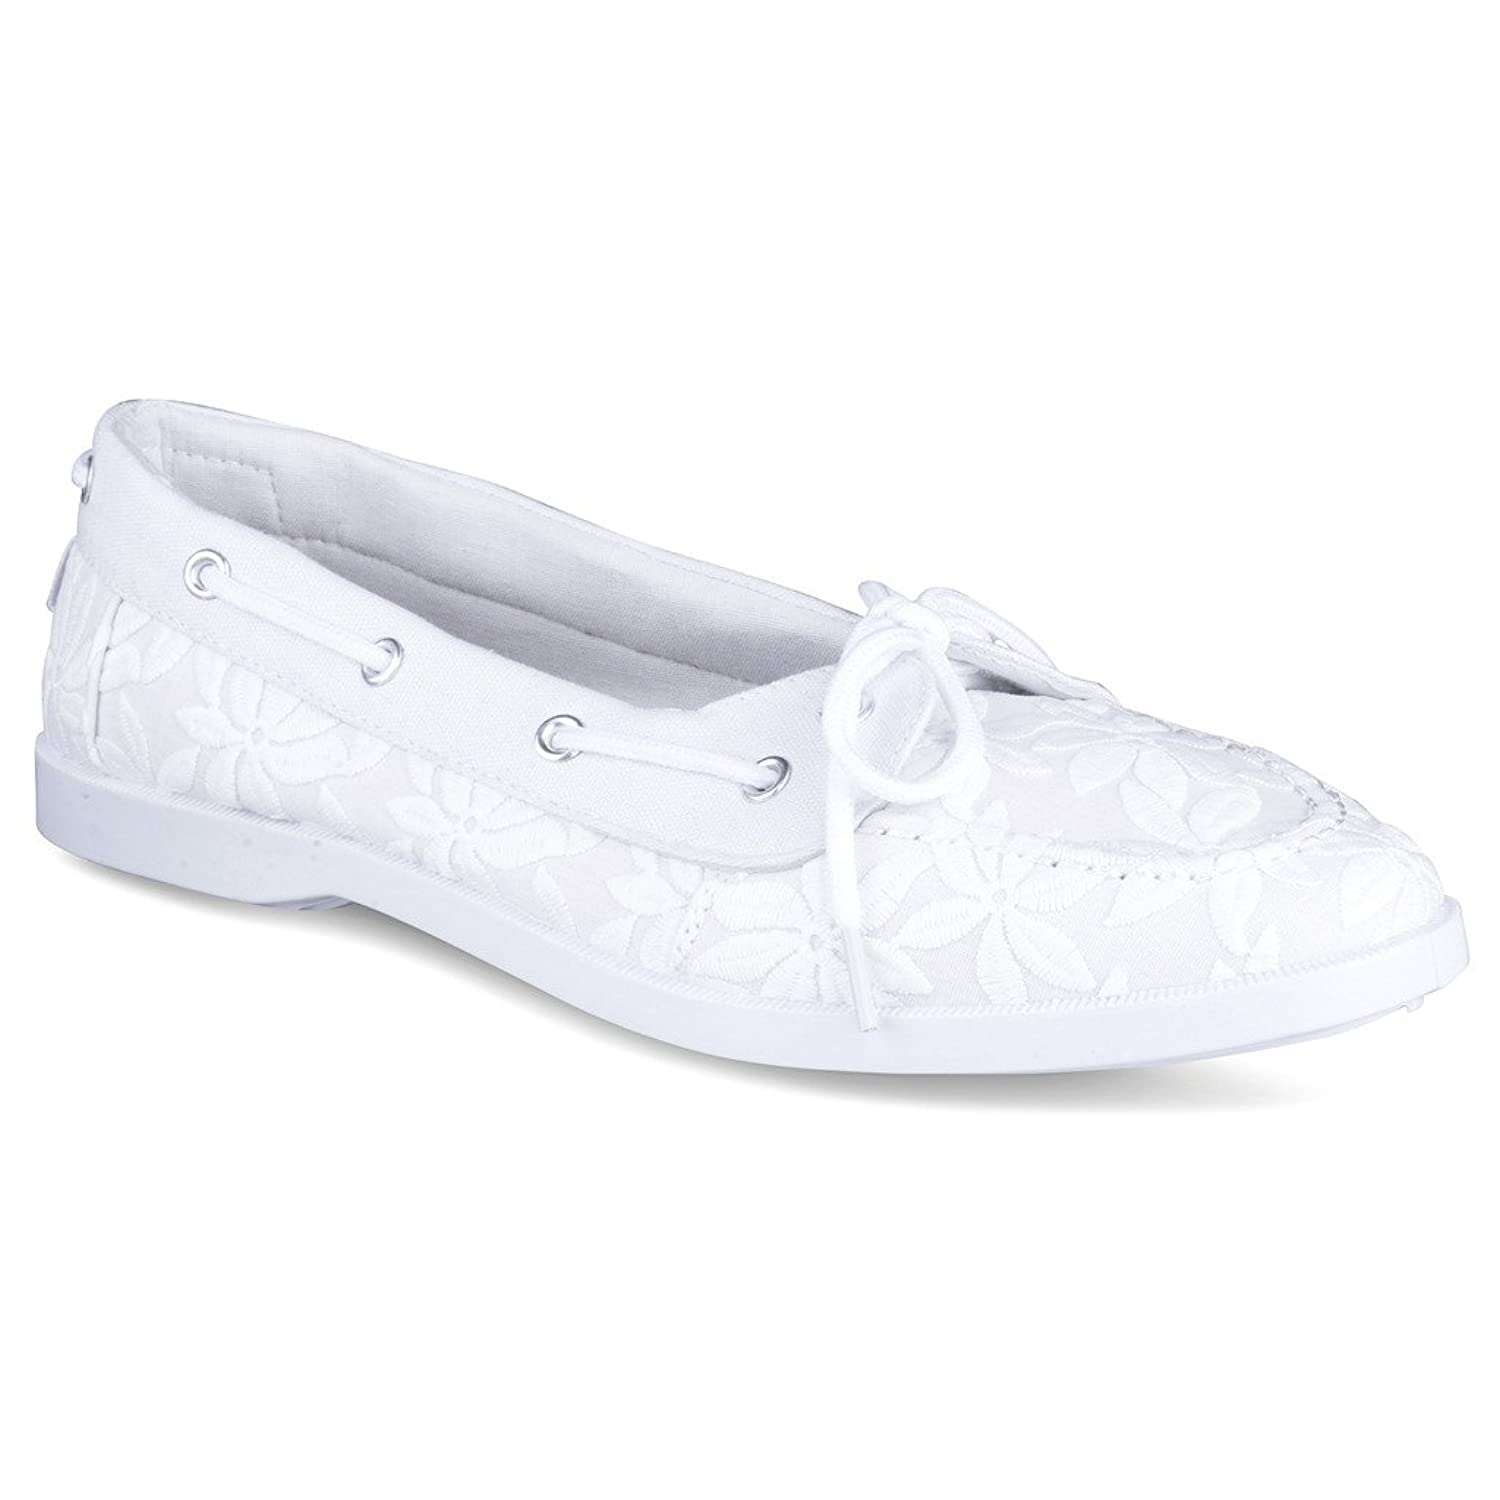 Twisted Women's Bonnie Floral Canvas Boat Shoe